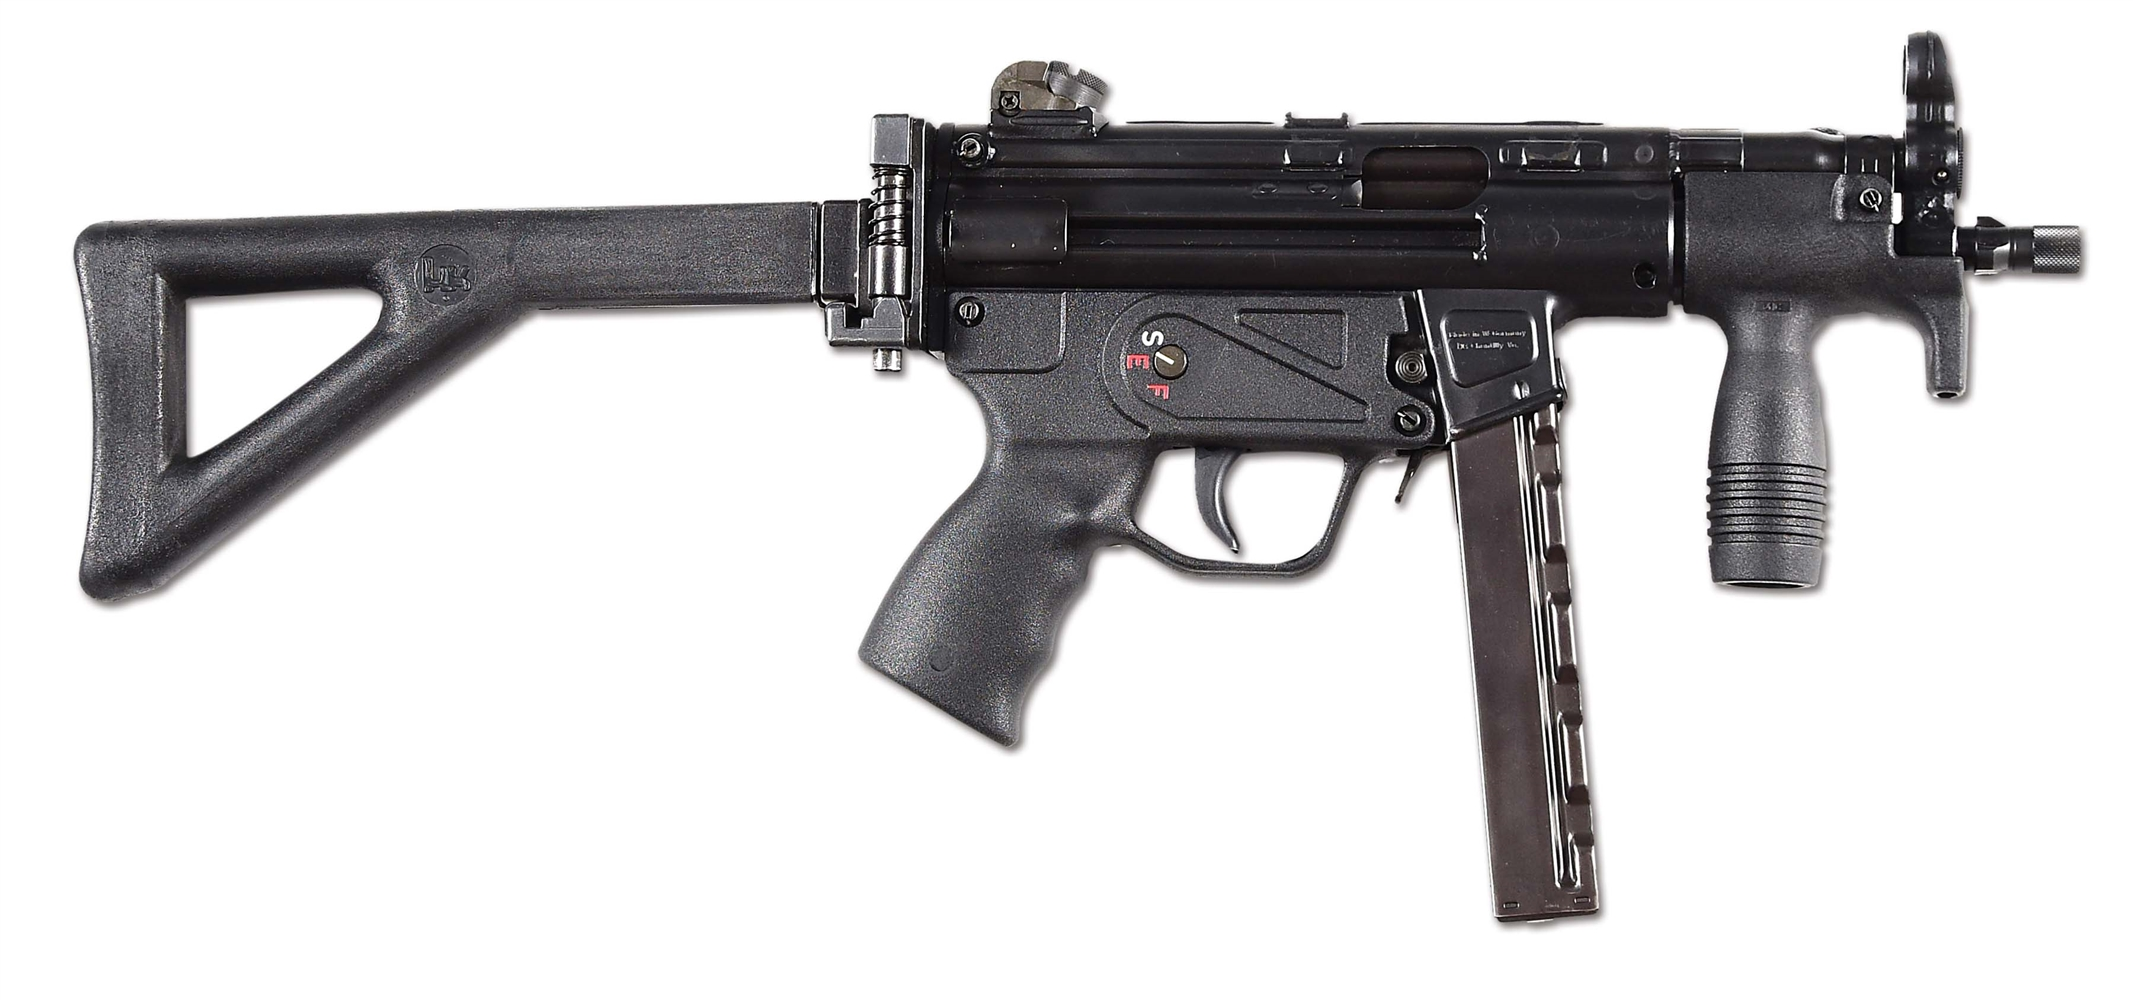 (N) VERY DESIRABLE S & H ARMS REGISTERED RECEIVER HK 94 CONVERTED TO MP5K FOLDING STOCK MACHINE GUN (FULLY TRANSFERABLE).